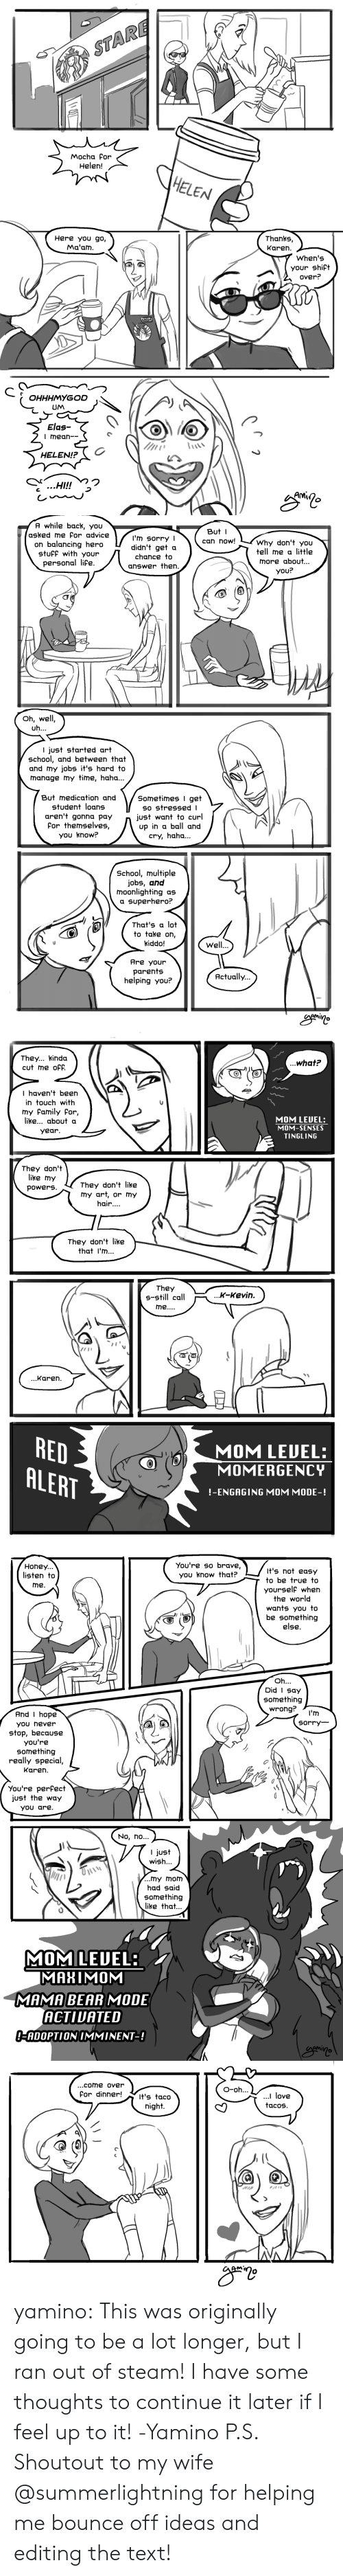 tingling: Mocha For  Helen!  HELEN  Here yoU go,  Ma'am  Thanks,  Karen.  When's  your shift  over?  OHHHMYGOD  UM  Elas-  | meah-  HELEN!!?  AMÍ   A while back, you  asked me Por advice  on balancing hero  stufF with your  personal life  But I  can now!  I'm sorry l  didn't get a  chance to  answer then.  Why don't you  tell me a little  more about.  YOU?  CT  Oh, well,  I just started art  school, and between that  and my jobs it's hard to  manage my time, haha  But medication and  student loans  aren't gonna pay  For themselves,  you know?  Sometimes I get  so stressed I  just want to curl  up in a ball and  cry, haha...  School, multiple  jobs, and  moonlighting as  a superhero?  That's a lot  to take on,  kiddo!  Well  Are your  parents  helping you?  Actually...  AMi   They... kinda  cut me off.  ...what?  I haven't been  in touchwith  my family For,  like about a  year.  MOM LEUEL:  MOM-SENSES  TINGLING  They don't  like my  powerg  They don't like  my art, or my  hair....  They don't like  that l'm...  They  s-stl call  K-xevin.  ...Karen  RED  ALERT  MOM LEDEL:  MOMERGENCY  !-ENGAGING MOM MODE-!   Honey...  listen to  me.  You're so brave,  you know that?  It's not easy  to be true to  yourself when  the world  wants you to  be something  else  I IL  Did I Say  something  wrong?  l'm  sorry  And I hope  you never  stop, because  you're  something  really special,  Karen.  You're perfect  just the way  You are  No, no...  I just  wish..  /...my mom  had said  something  like that...  MOMLEUEL  MAMA BEAR MODE  ACTIUATED  ADOPT 10 IMMINE T-1   ...come over  For dinner! t's taco  O-oh...  l love  tacos  night.  ぐ  (O  Mt yamino:  This was originally going to be a lot longer, but I ran out of steam! I have some thoughts to continue it later if I feel up to it! -Yamino P.S. Shoutout to my wife @summerlightning for helping me bounce off ideas and editing the text!